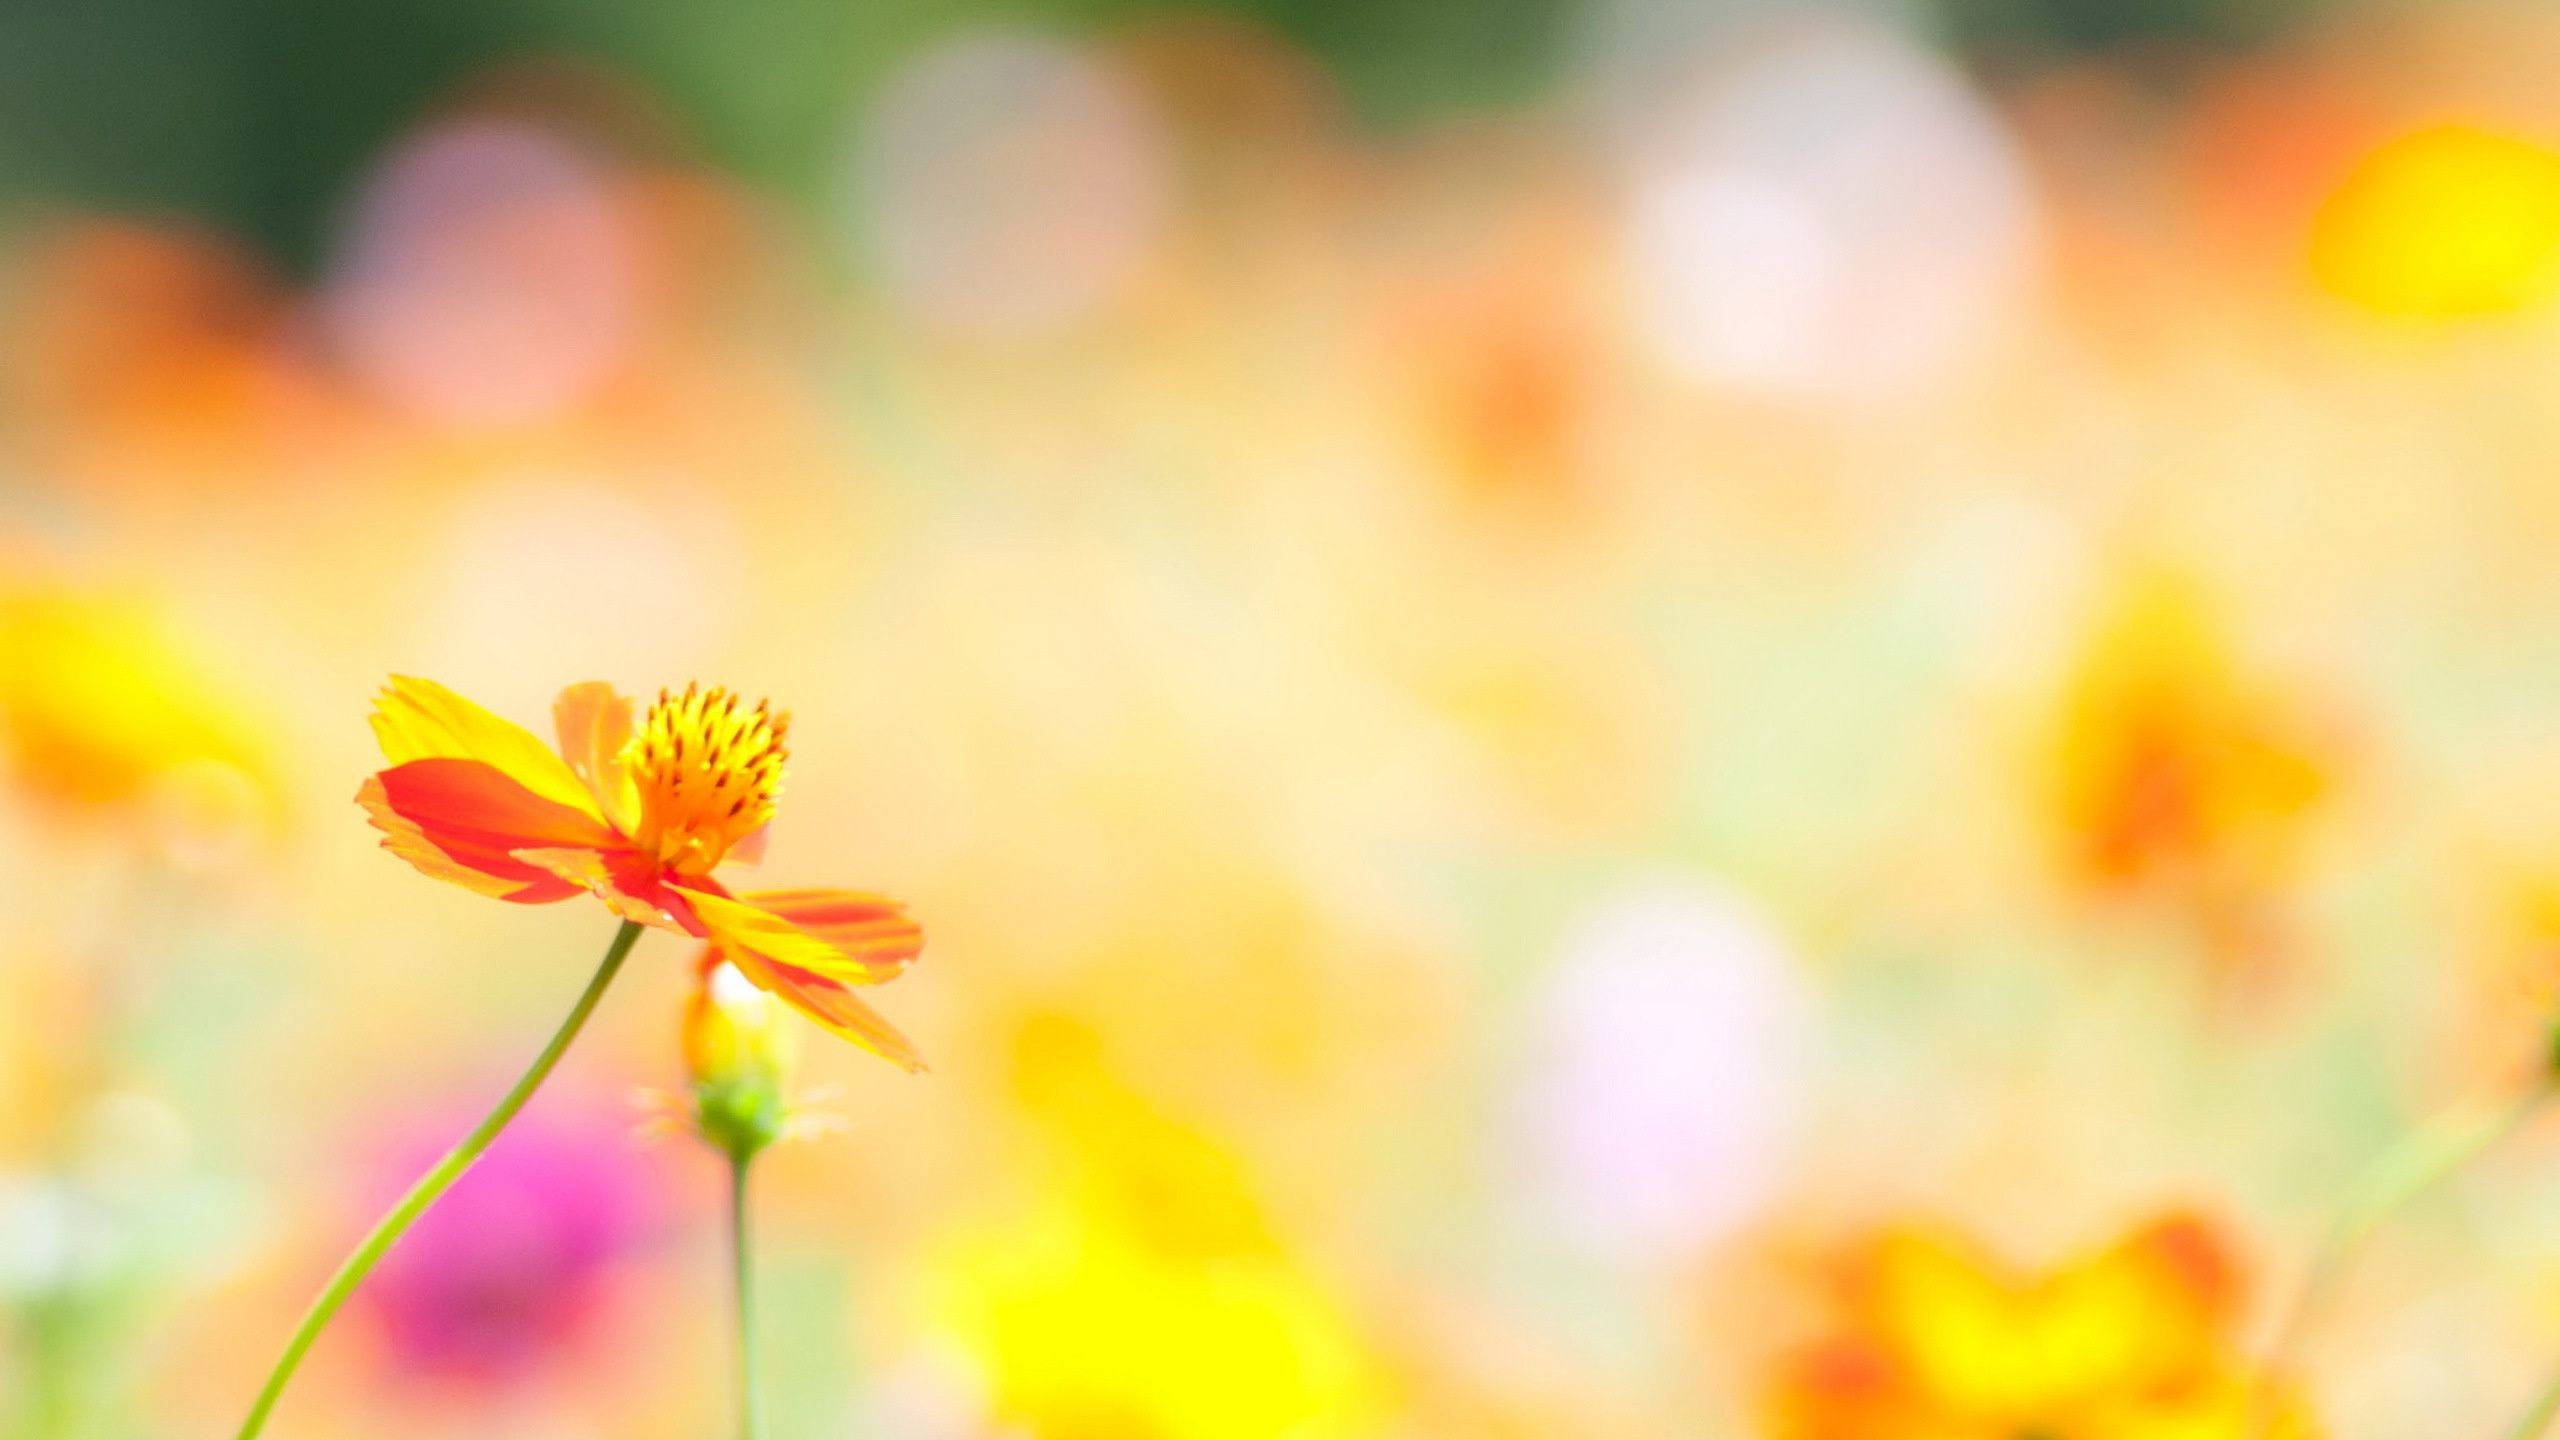 Res: 2560x1440, Download Convert View Source. Tagged on : Summer Flowers Wallpaper ...